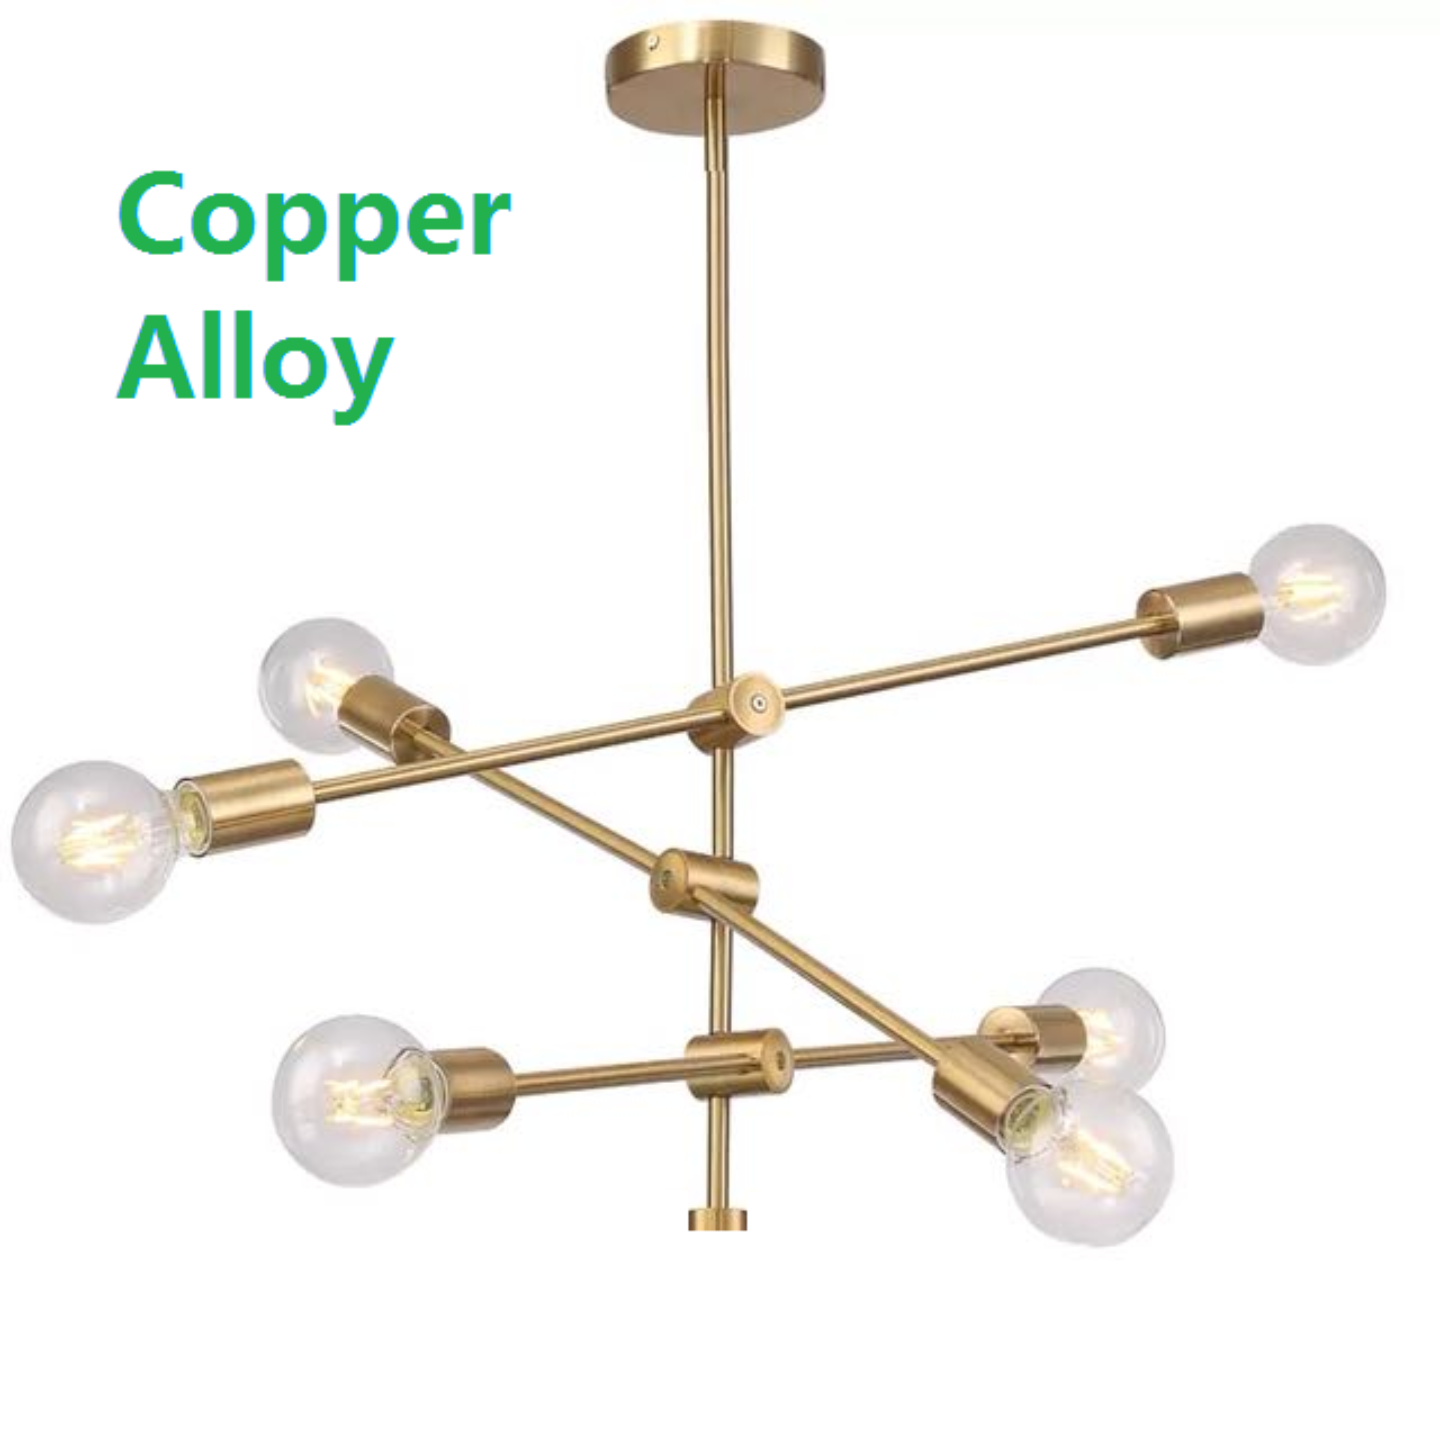 Balancing Chandelier Copper Alloy